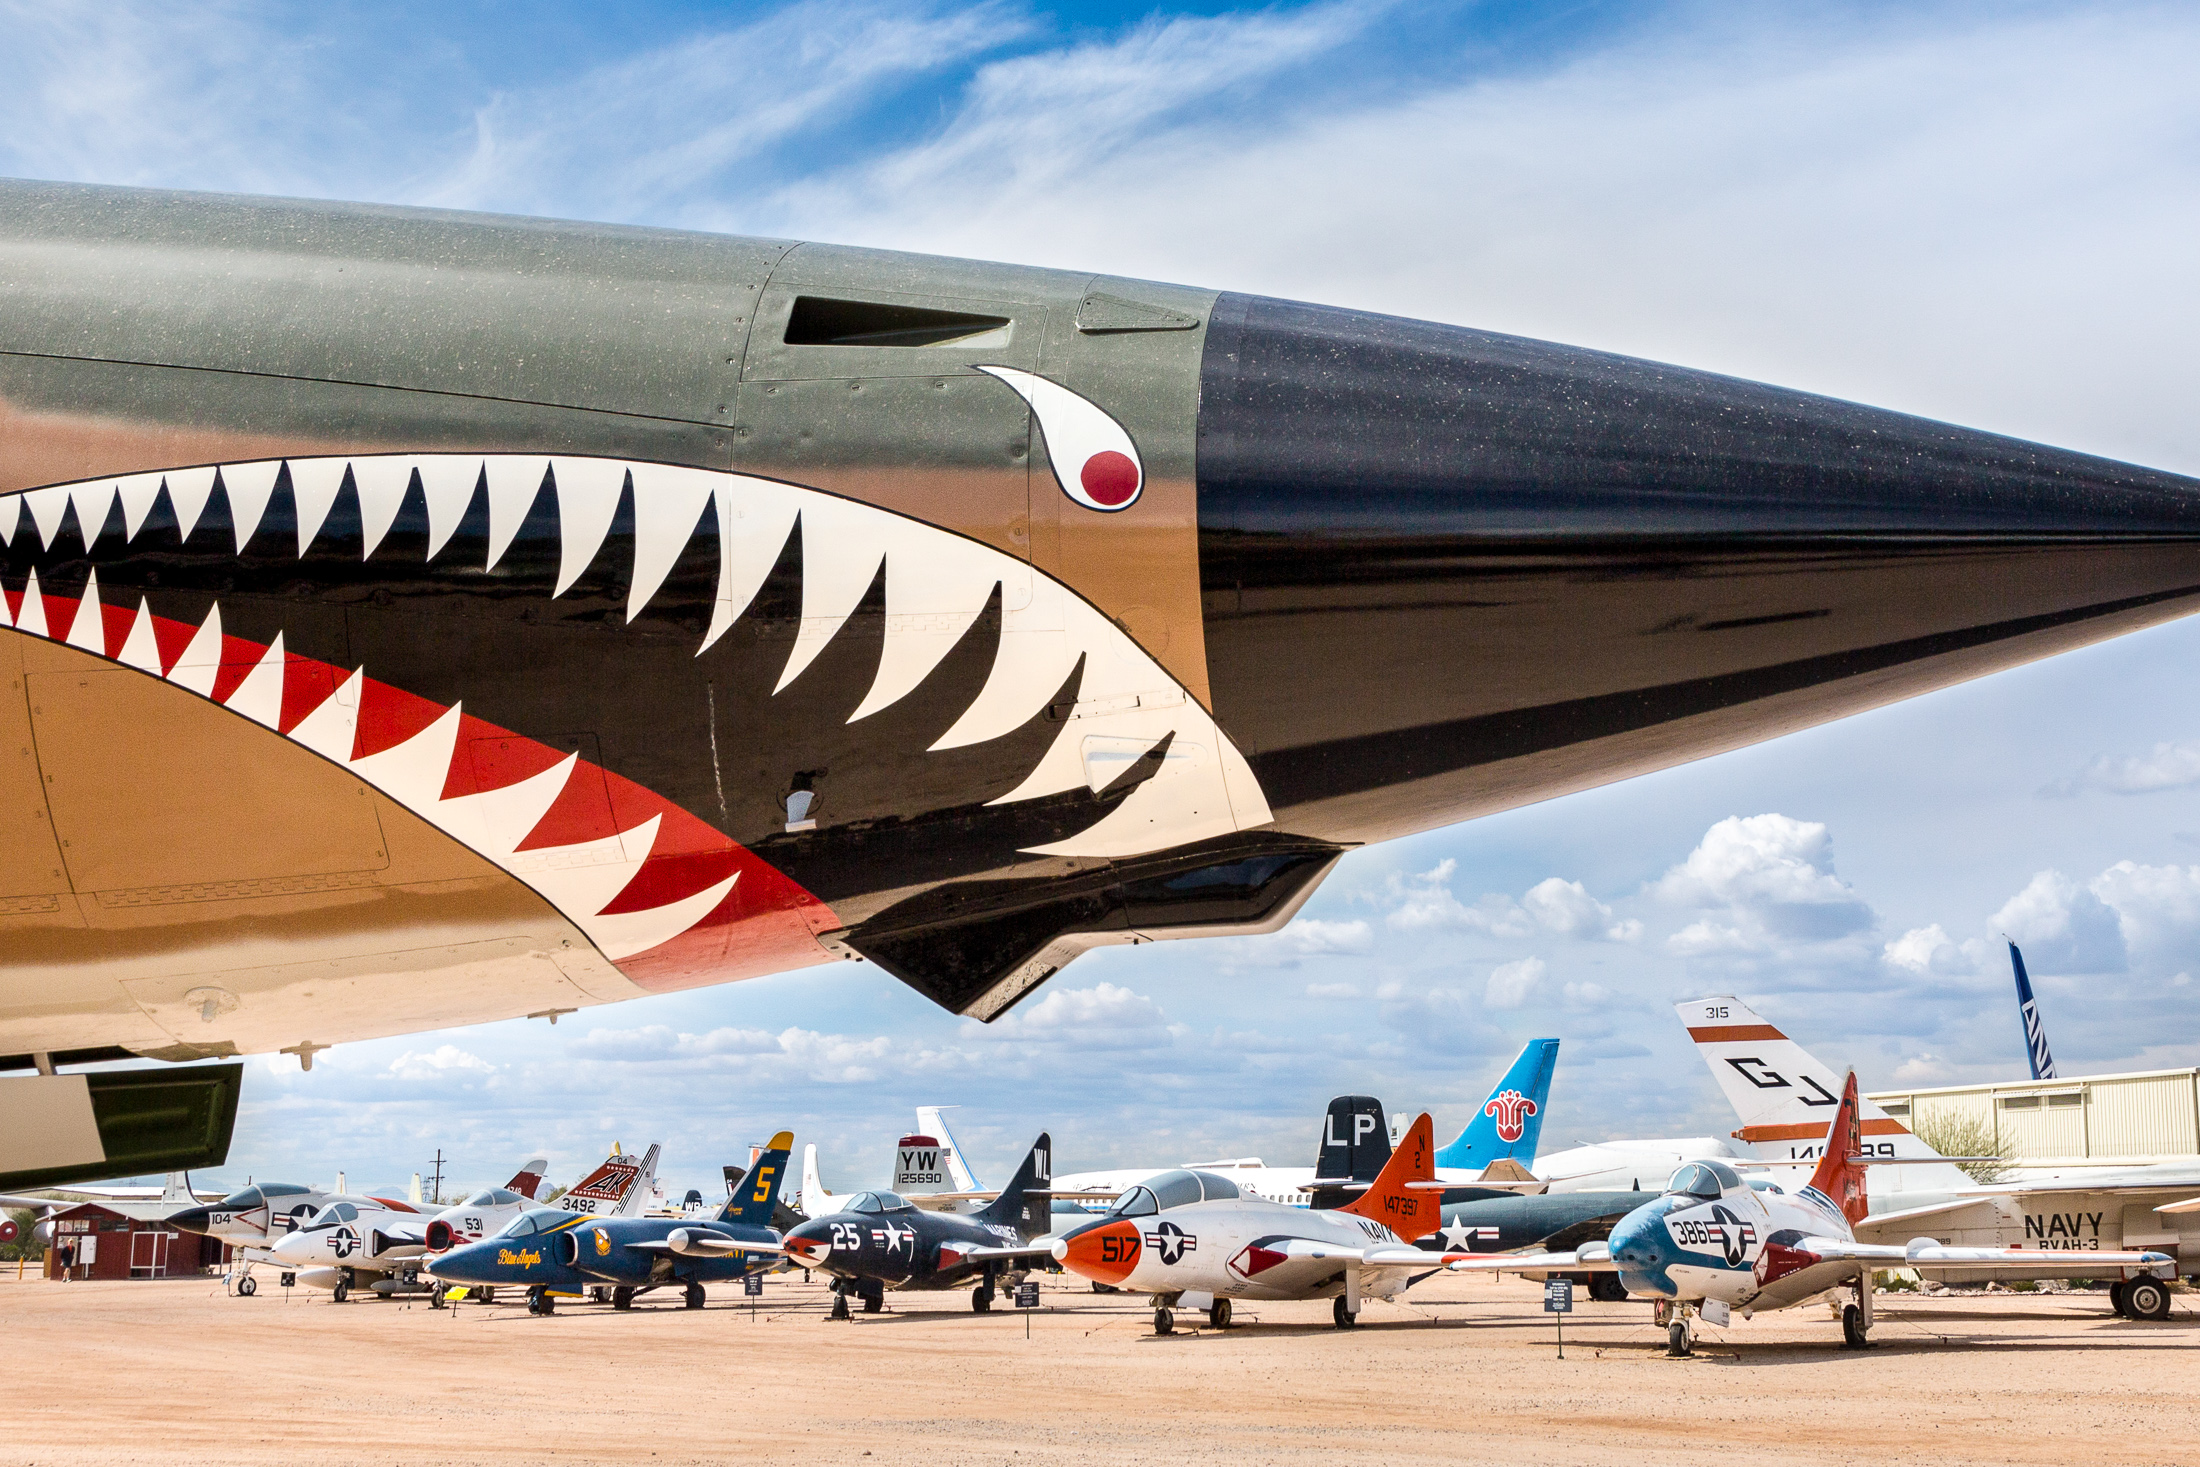 Pima_Air_Space_Museum__5304.jpg